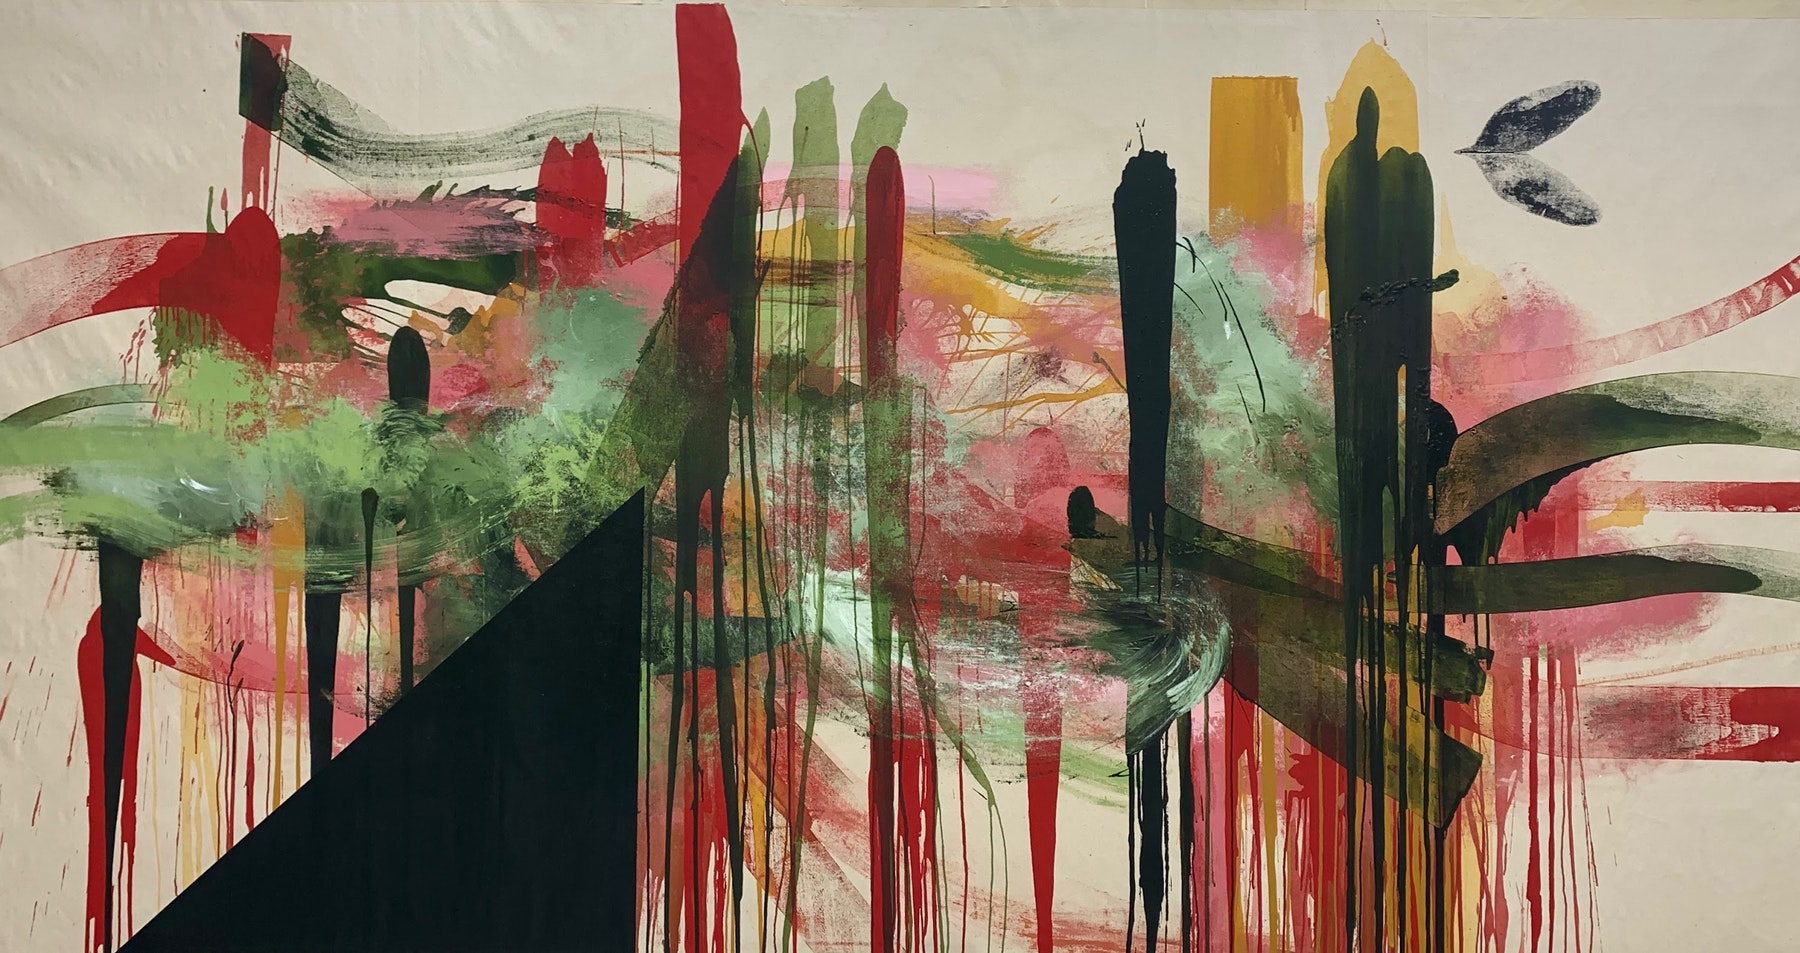 """Elizabeth Neel """"Facing the Further,"""" 2020 Acrylic on canvas 78 x 150"""" [HxW] (198.12 x 381 cm) Inventory #NEE252 Courtesy of the artist and Vielmetter Los Angeles Photocredit Adam Reich, NY"""